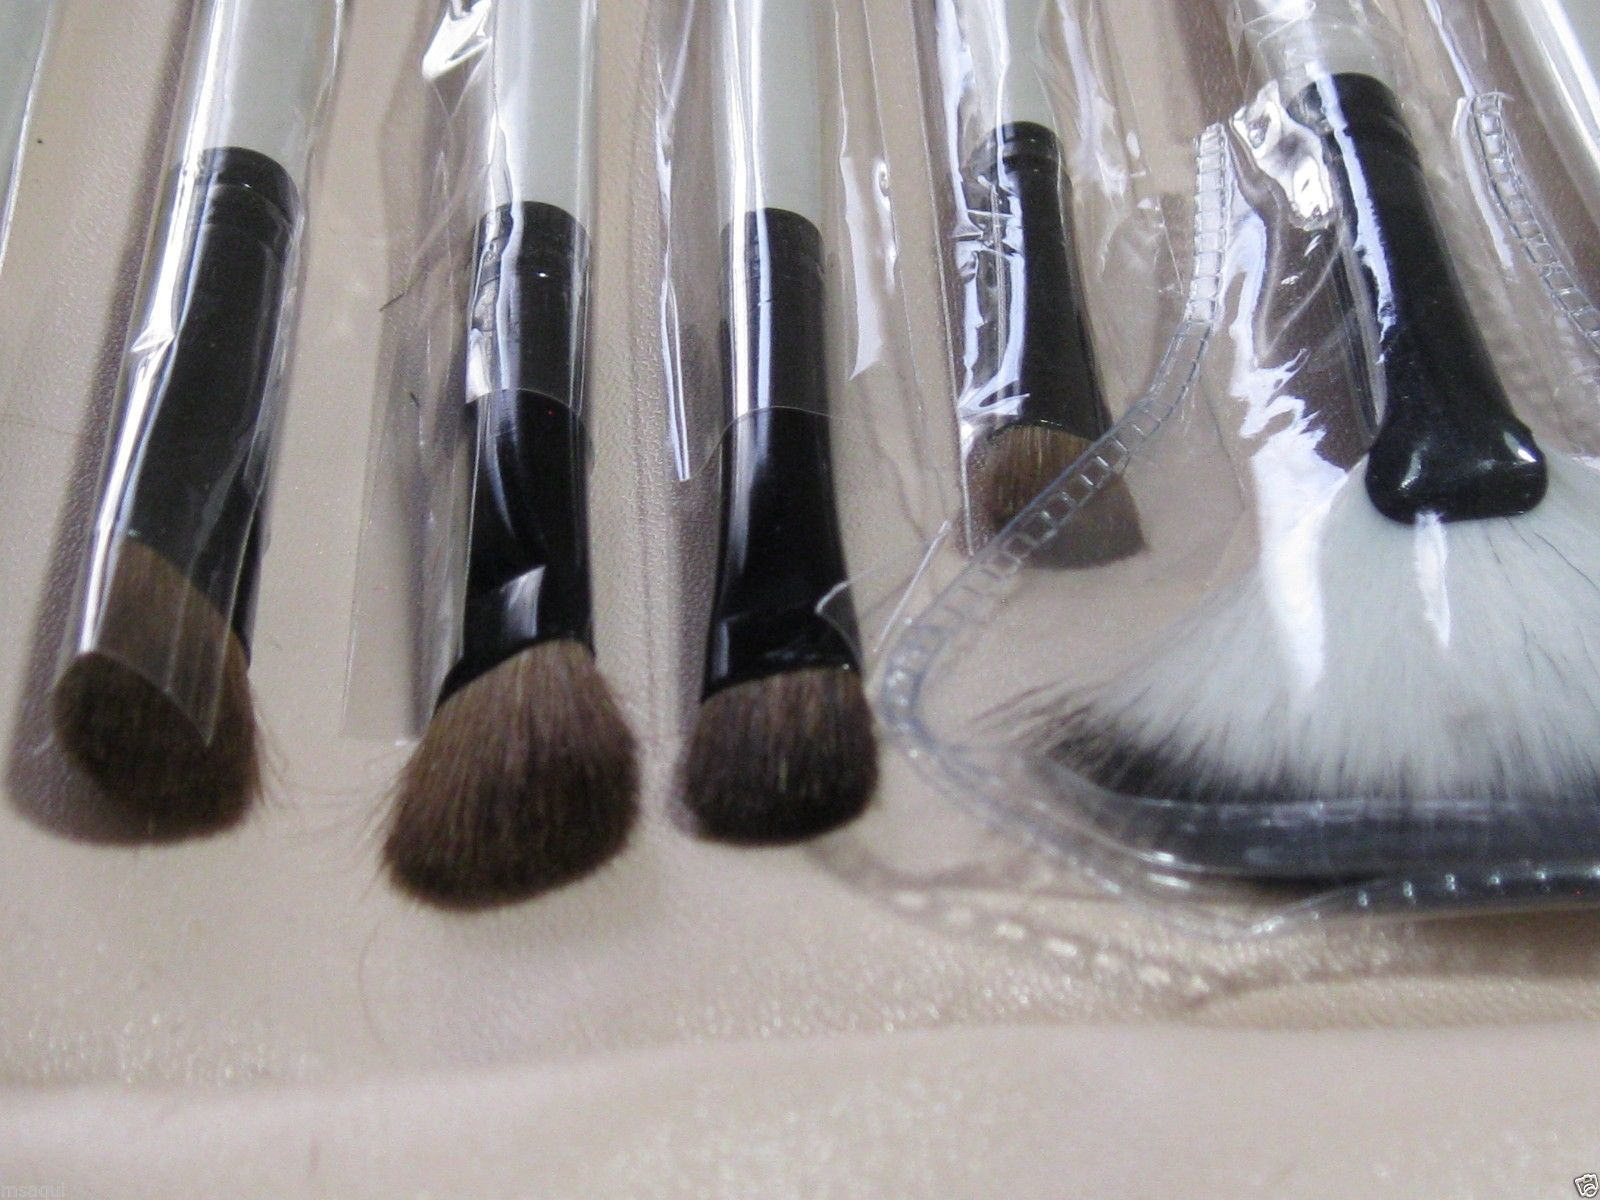 High Quality Deluxe Makeup Brush 20 Piece Set Cosmetic Brushes Plaid Case